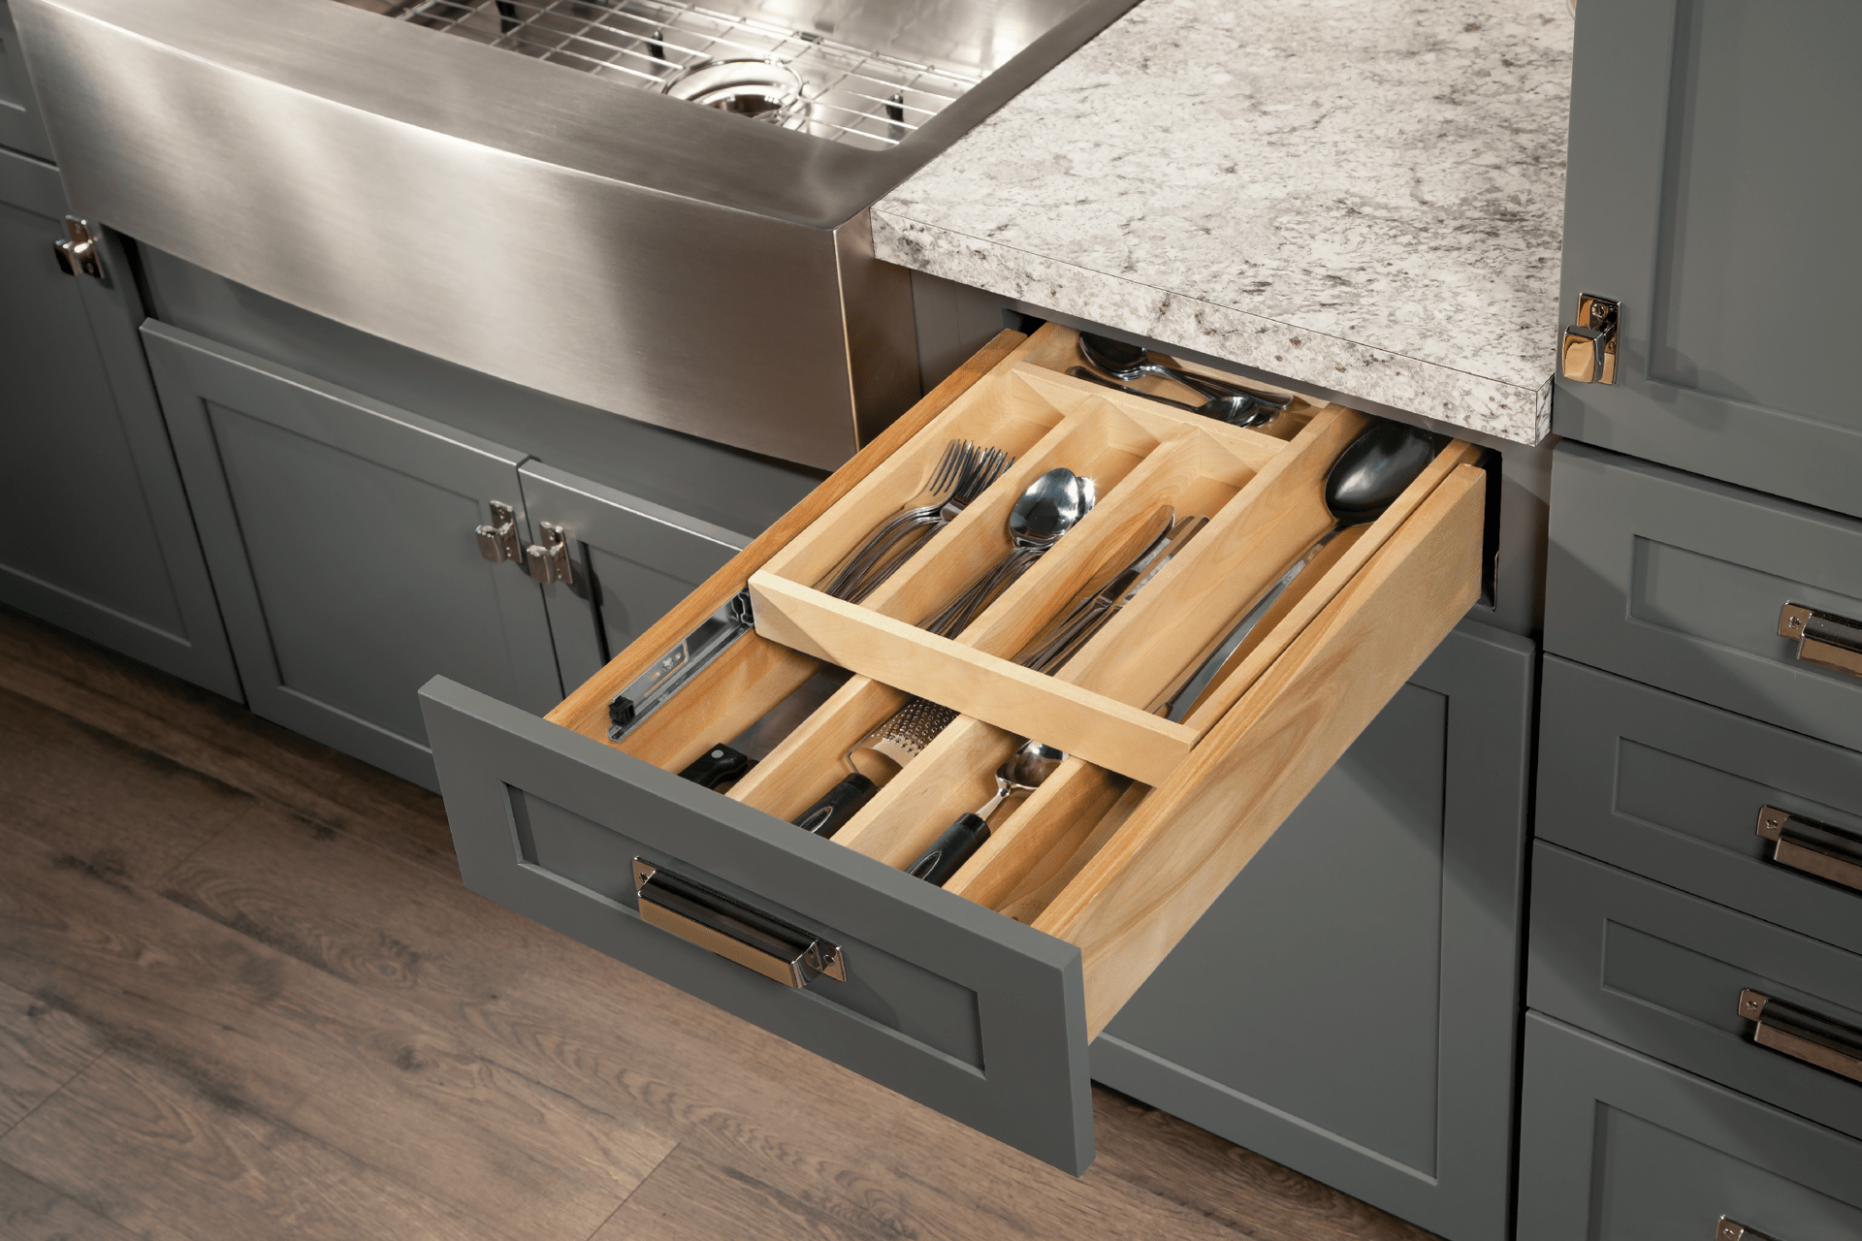 Wood Tiered Drawer Storage - Cardell Kitchen Cabinet Accessories - Kitchen Cabinet Accessories That Are Popular